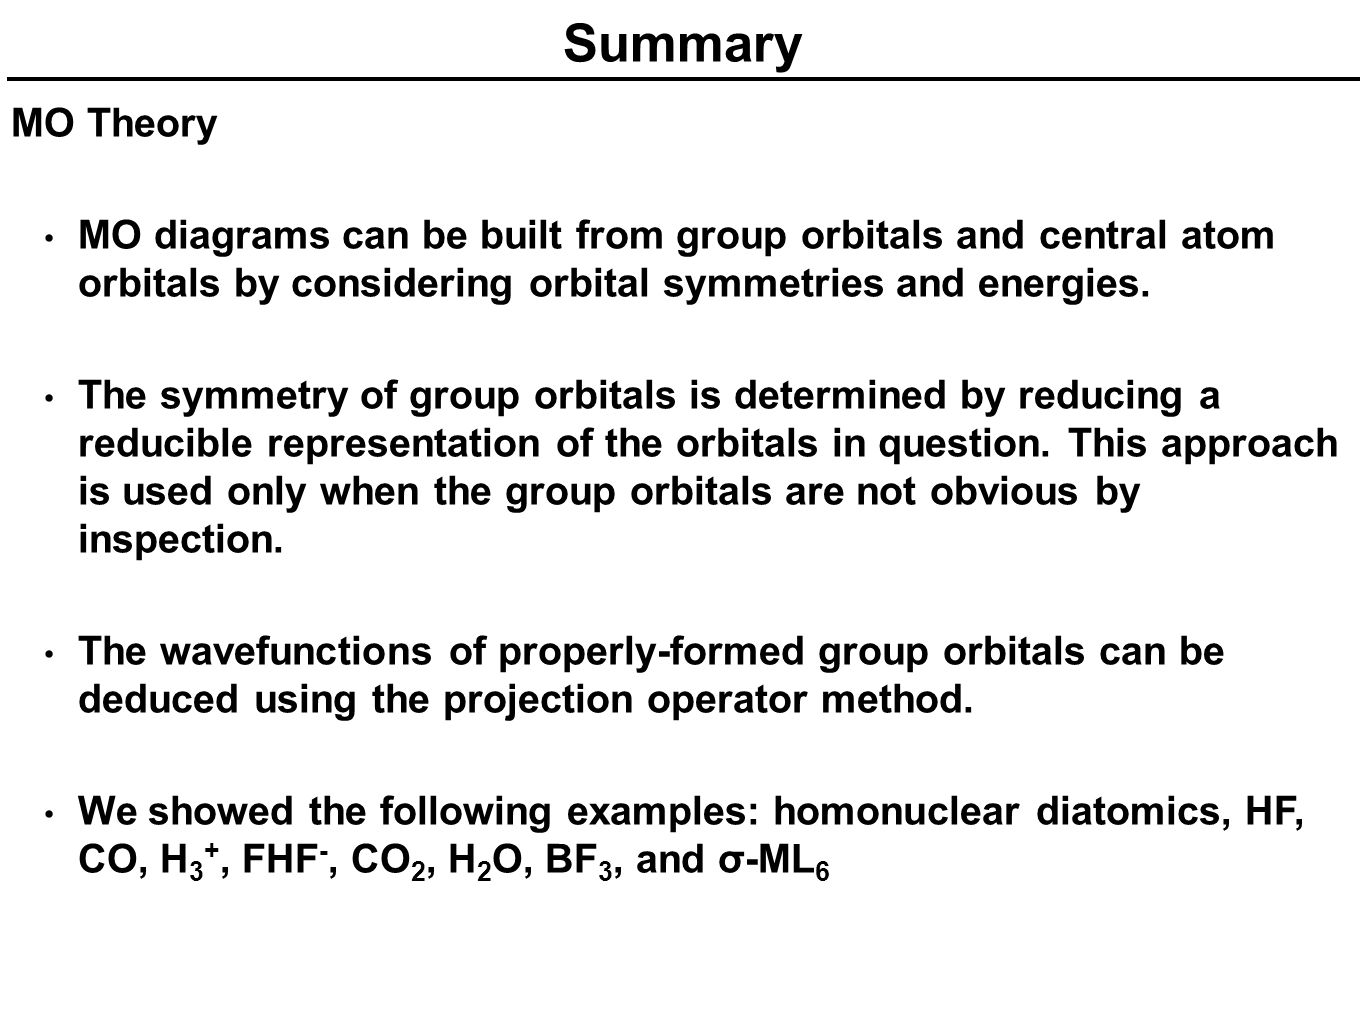 Summary MO Theory. MO diagrams can be built from group orbitals and central atom orbitals by considering orbital symmetries and energies.